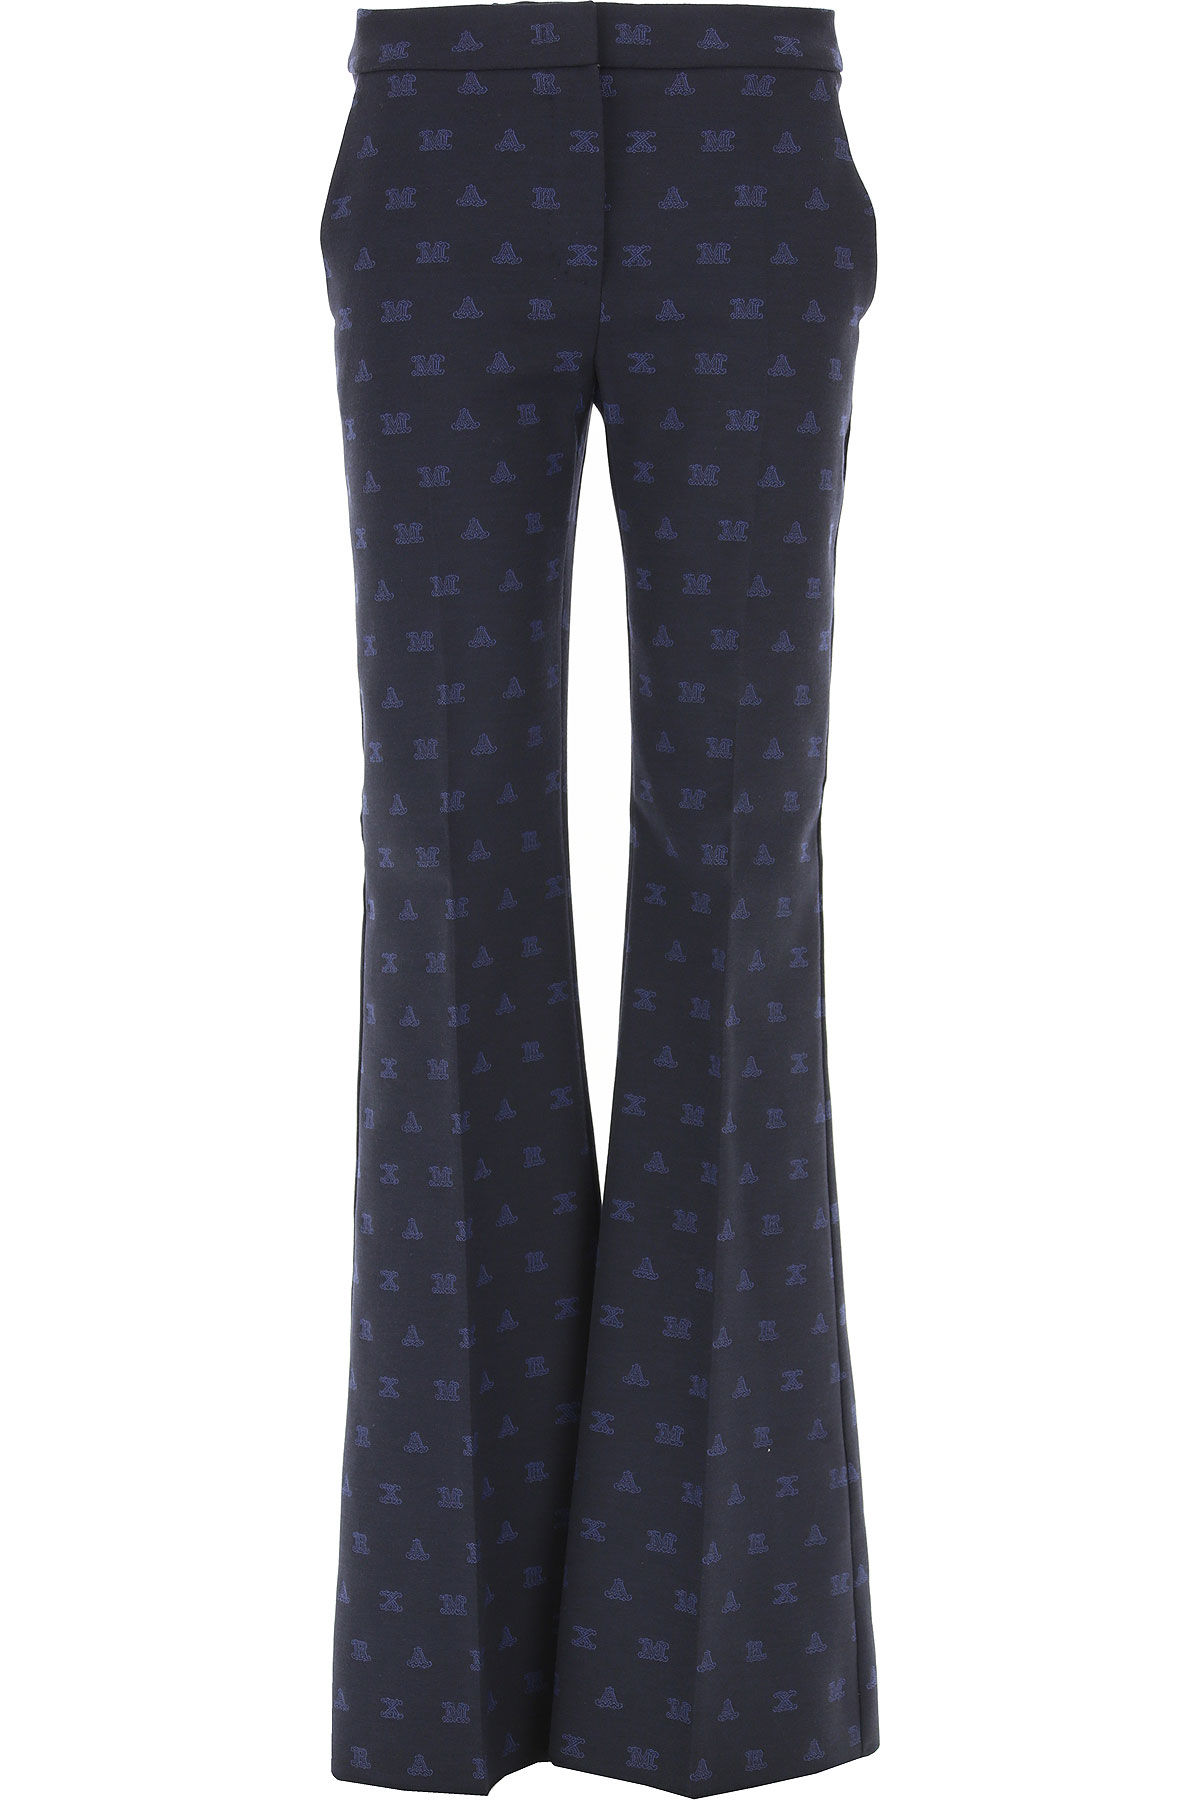 Image of Weekend by Max Mara Pants for Women, marine Blue, polyester, 2017, 26 28 30